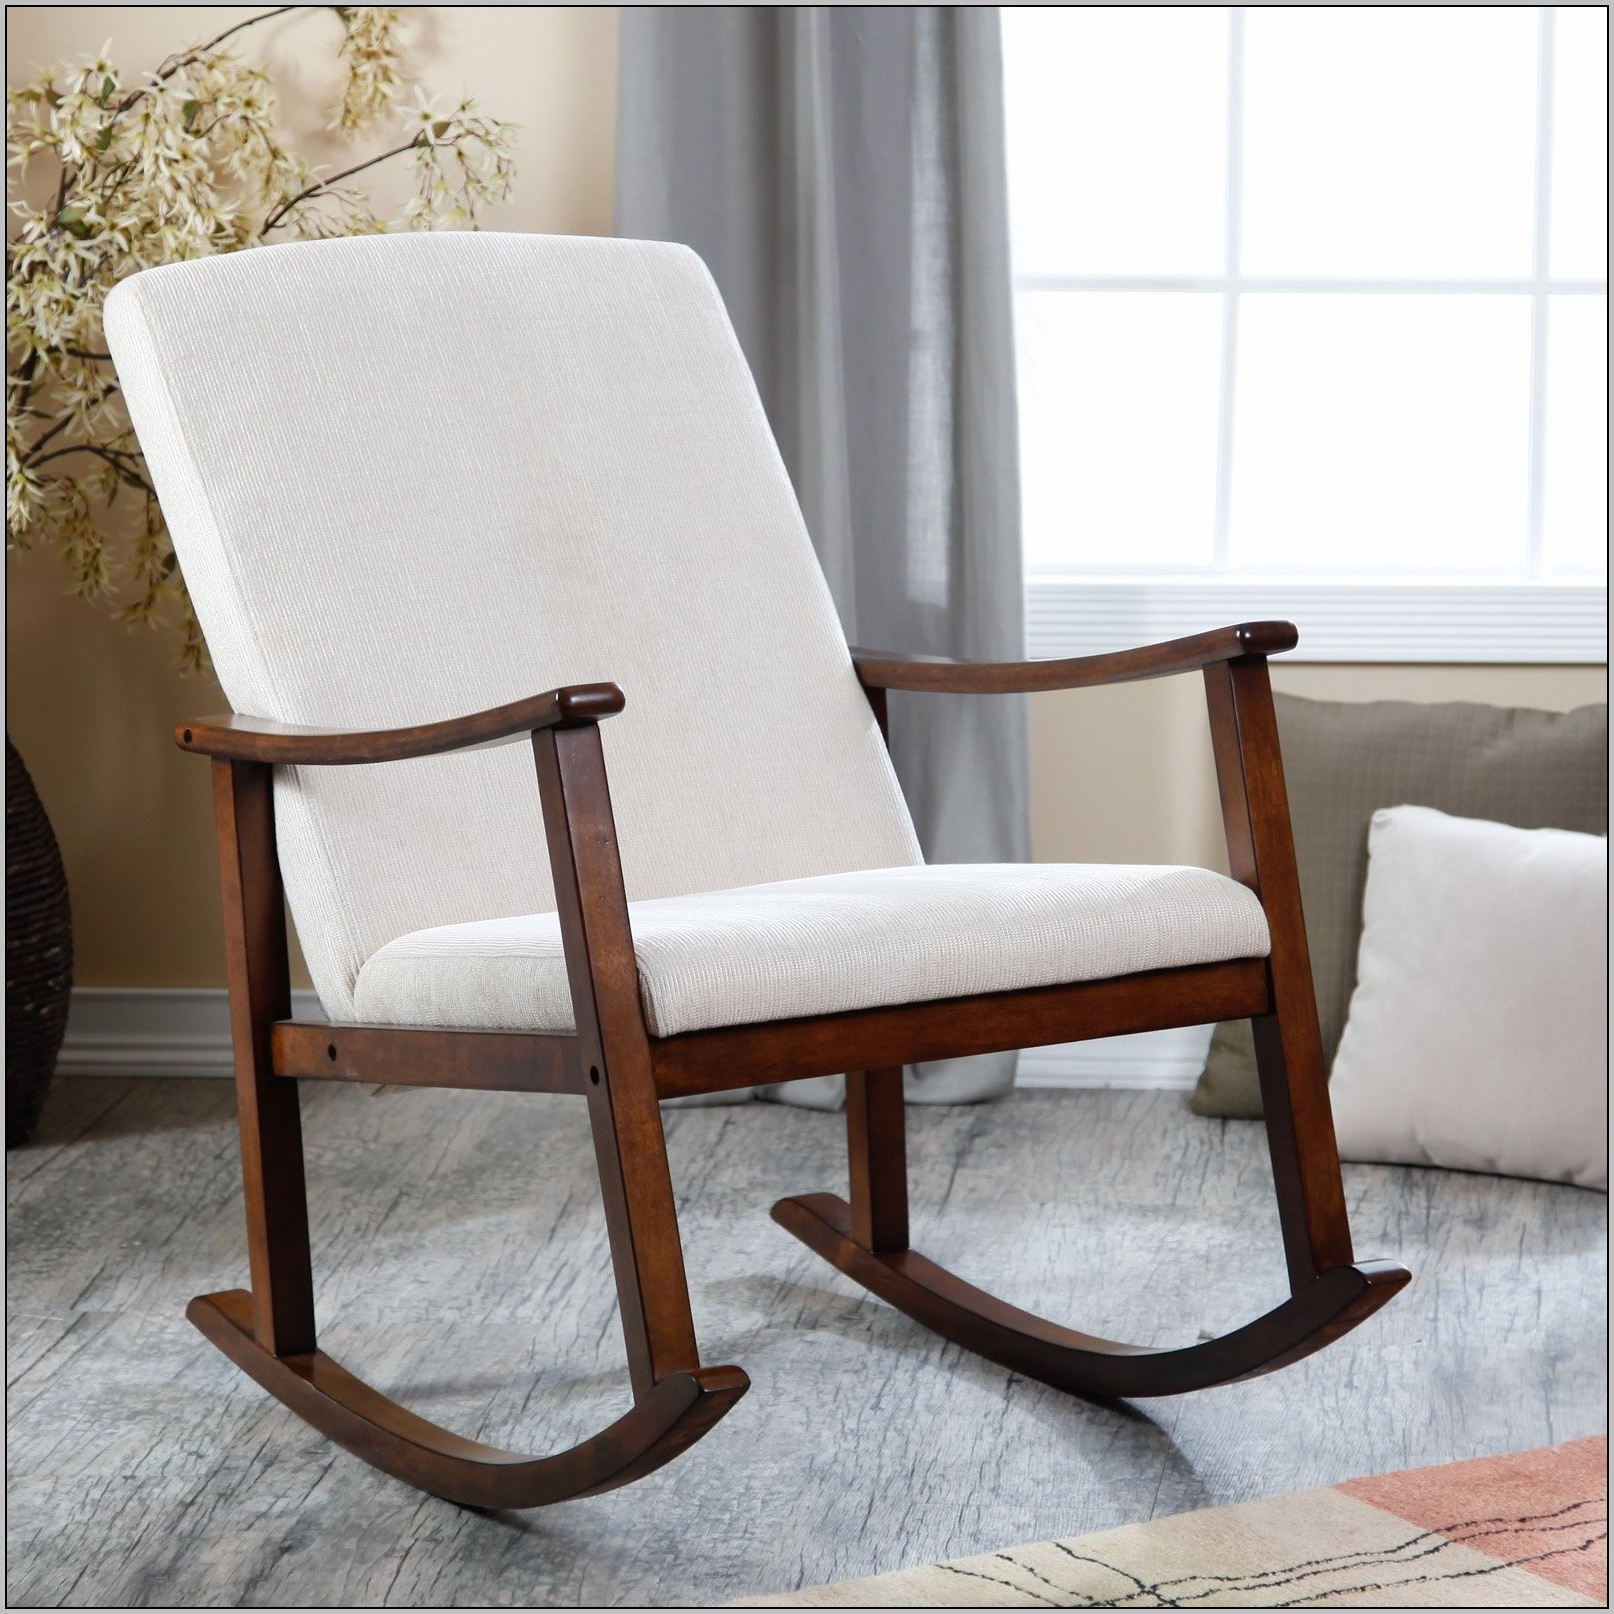 Most Current Upholstered Rocking Chairs Pertaining To Furniture Upholstered Rocking Chair And Ottoman Antique Chairs (View 8 of 20)